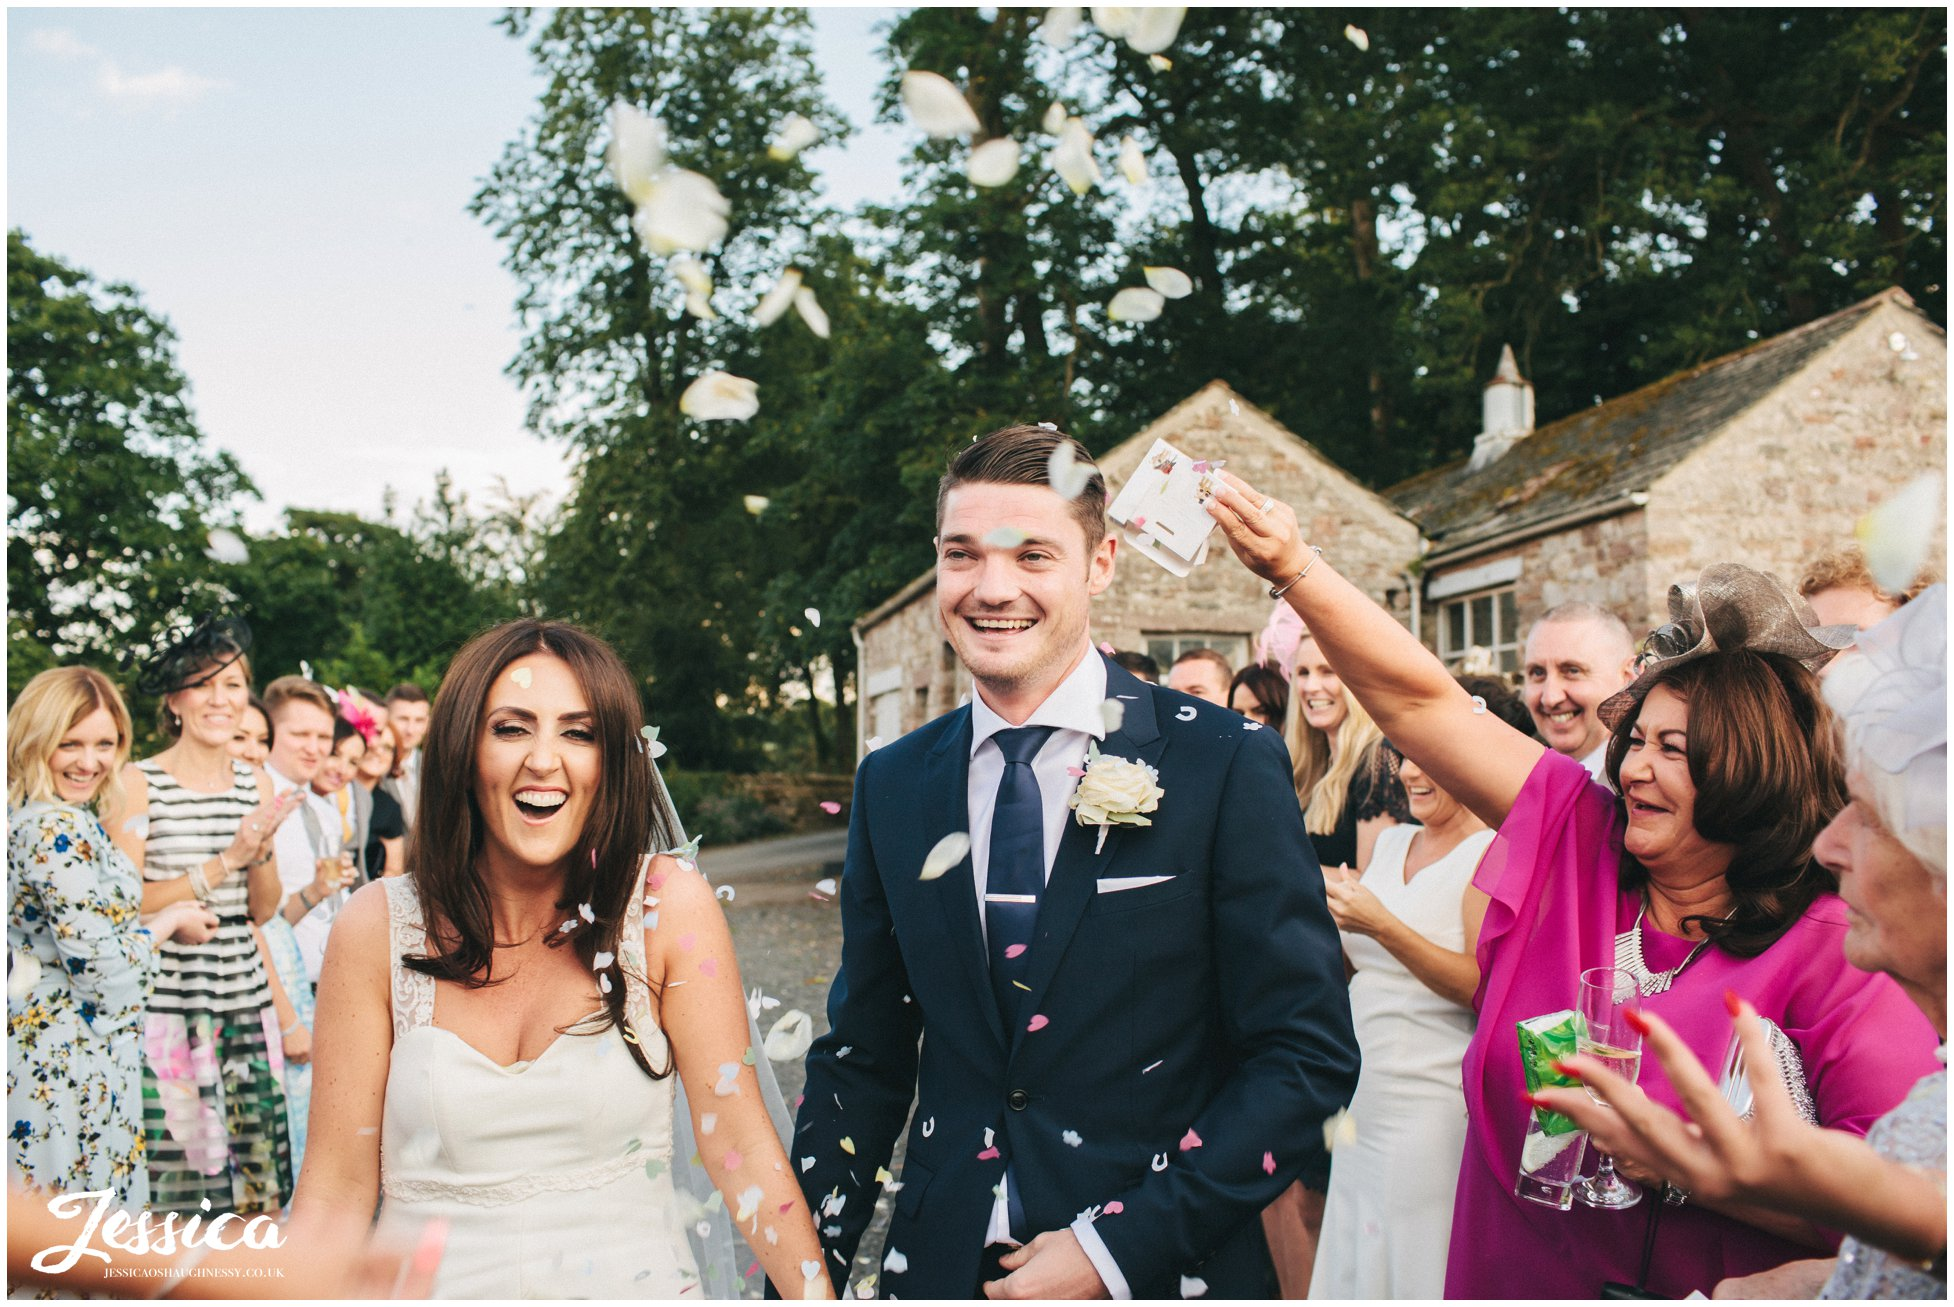 newly wed's walk through confetti line at their lake district wedding